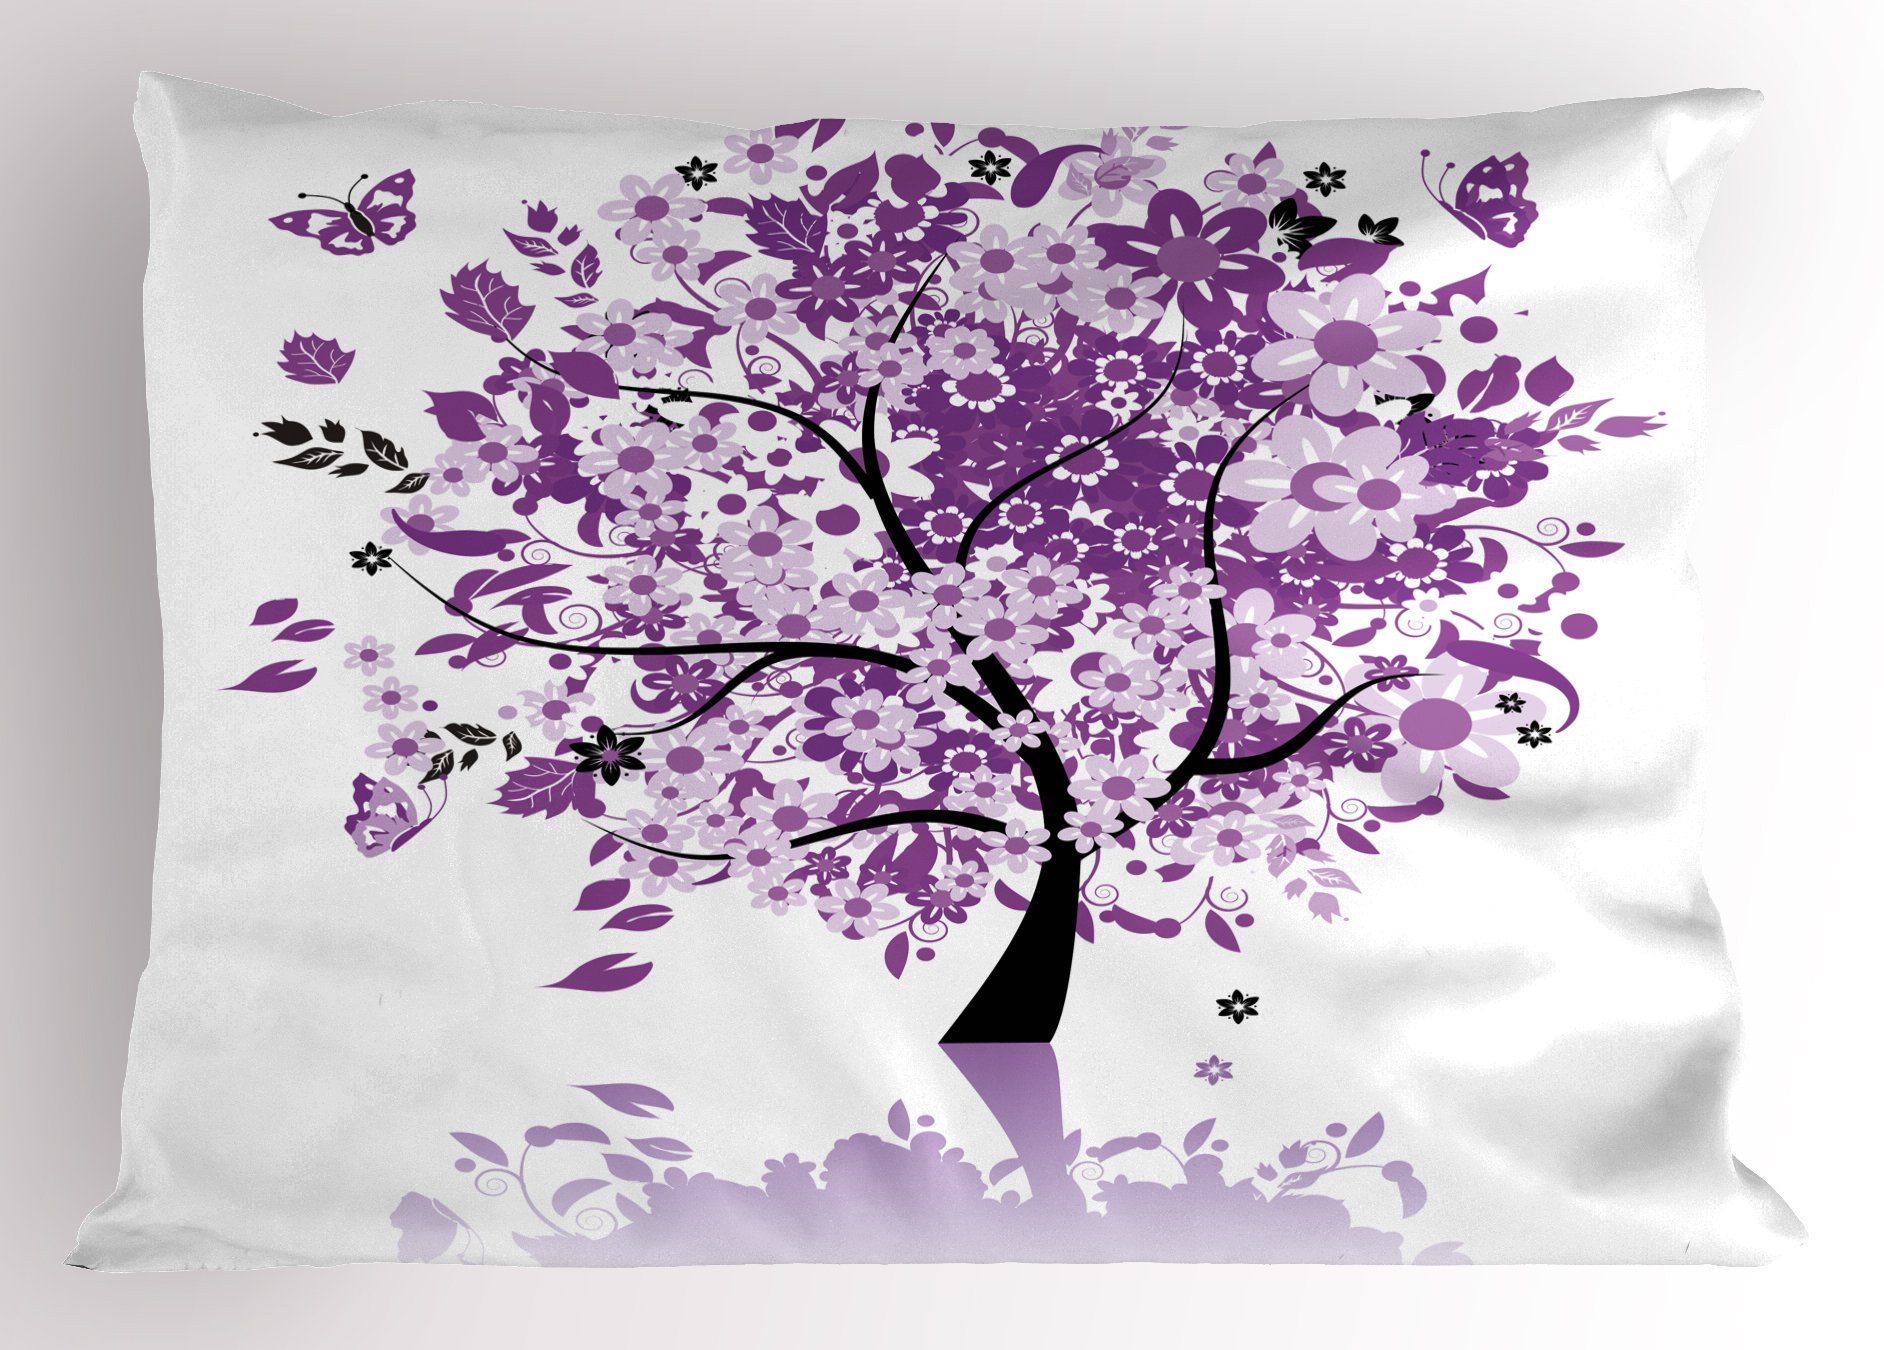 Ambesonne Nature Pillow Sham, Spring Tree of Life Sacred Woods with Blooming Flower and Butterfly Flying Romance, Decorative Standard Size Printed Pillowcase, 26 X 20 inches, Lilac Purple